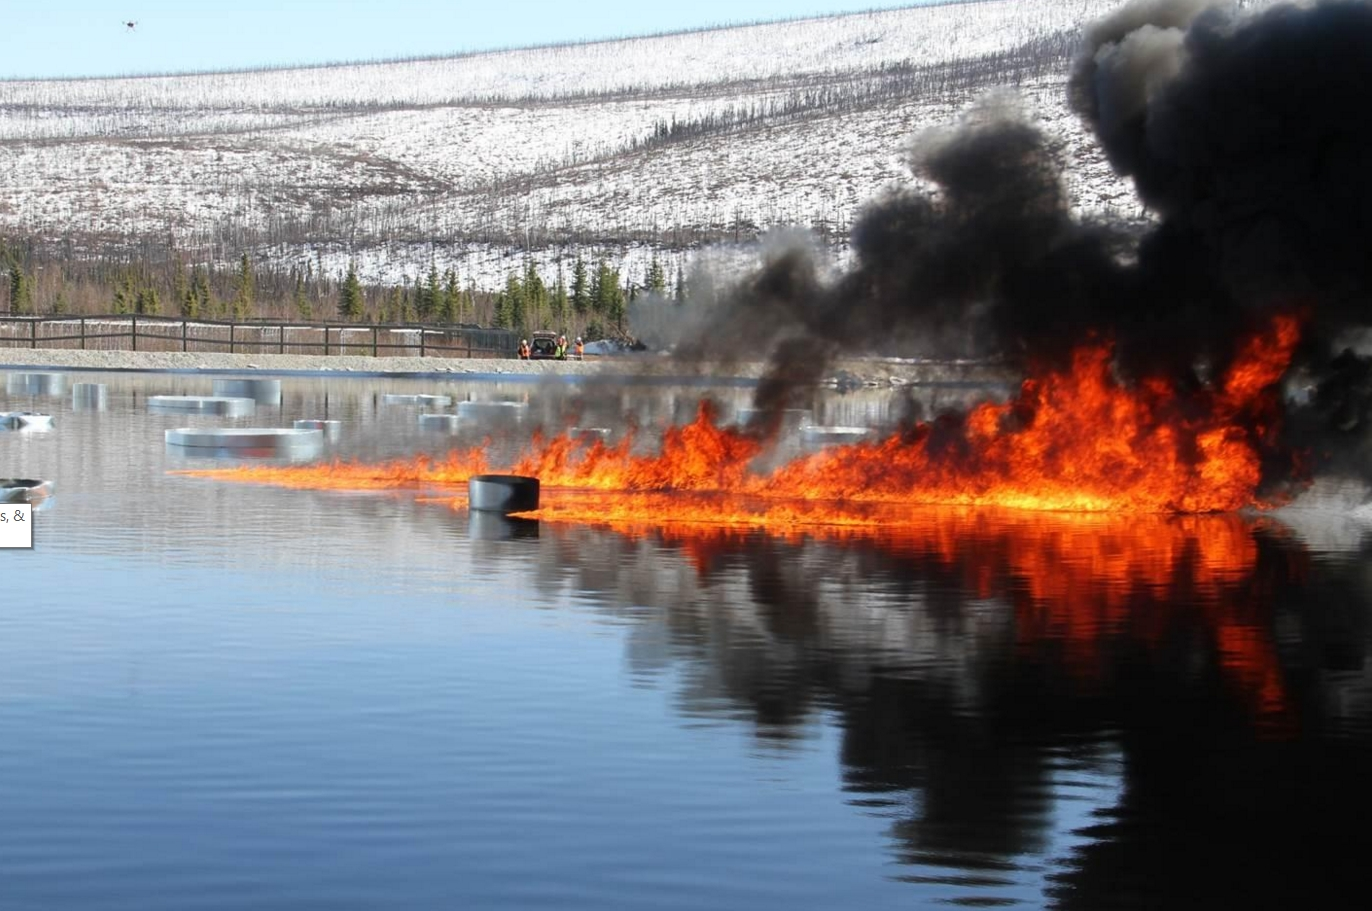 Oil burns on a manmade water basin at Poker Flat Research Range in April 2015. Photo by Len Zabilansky.